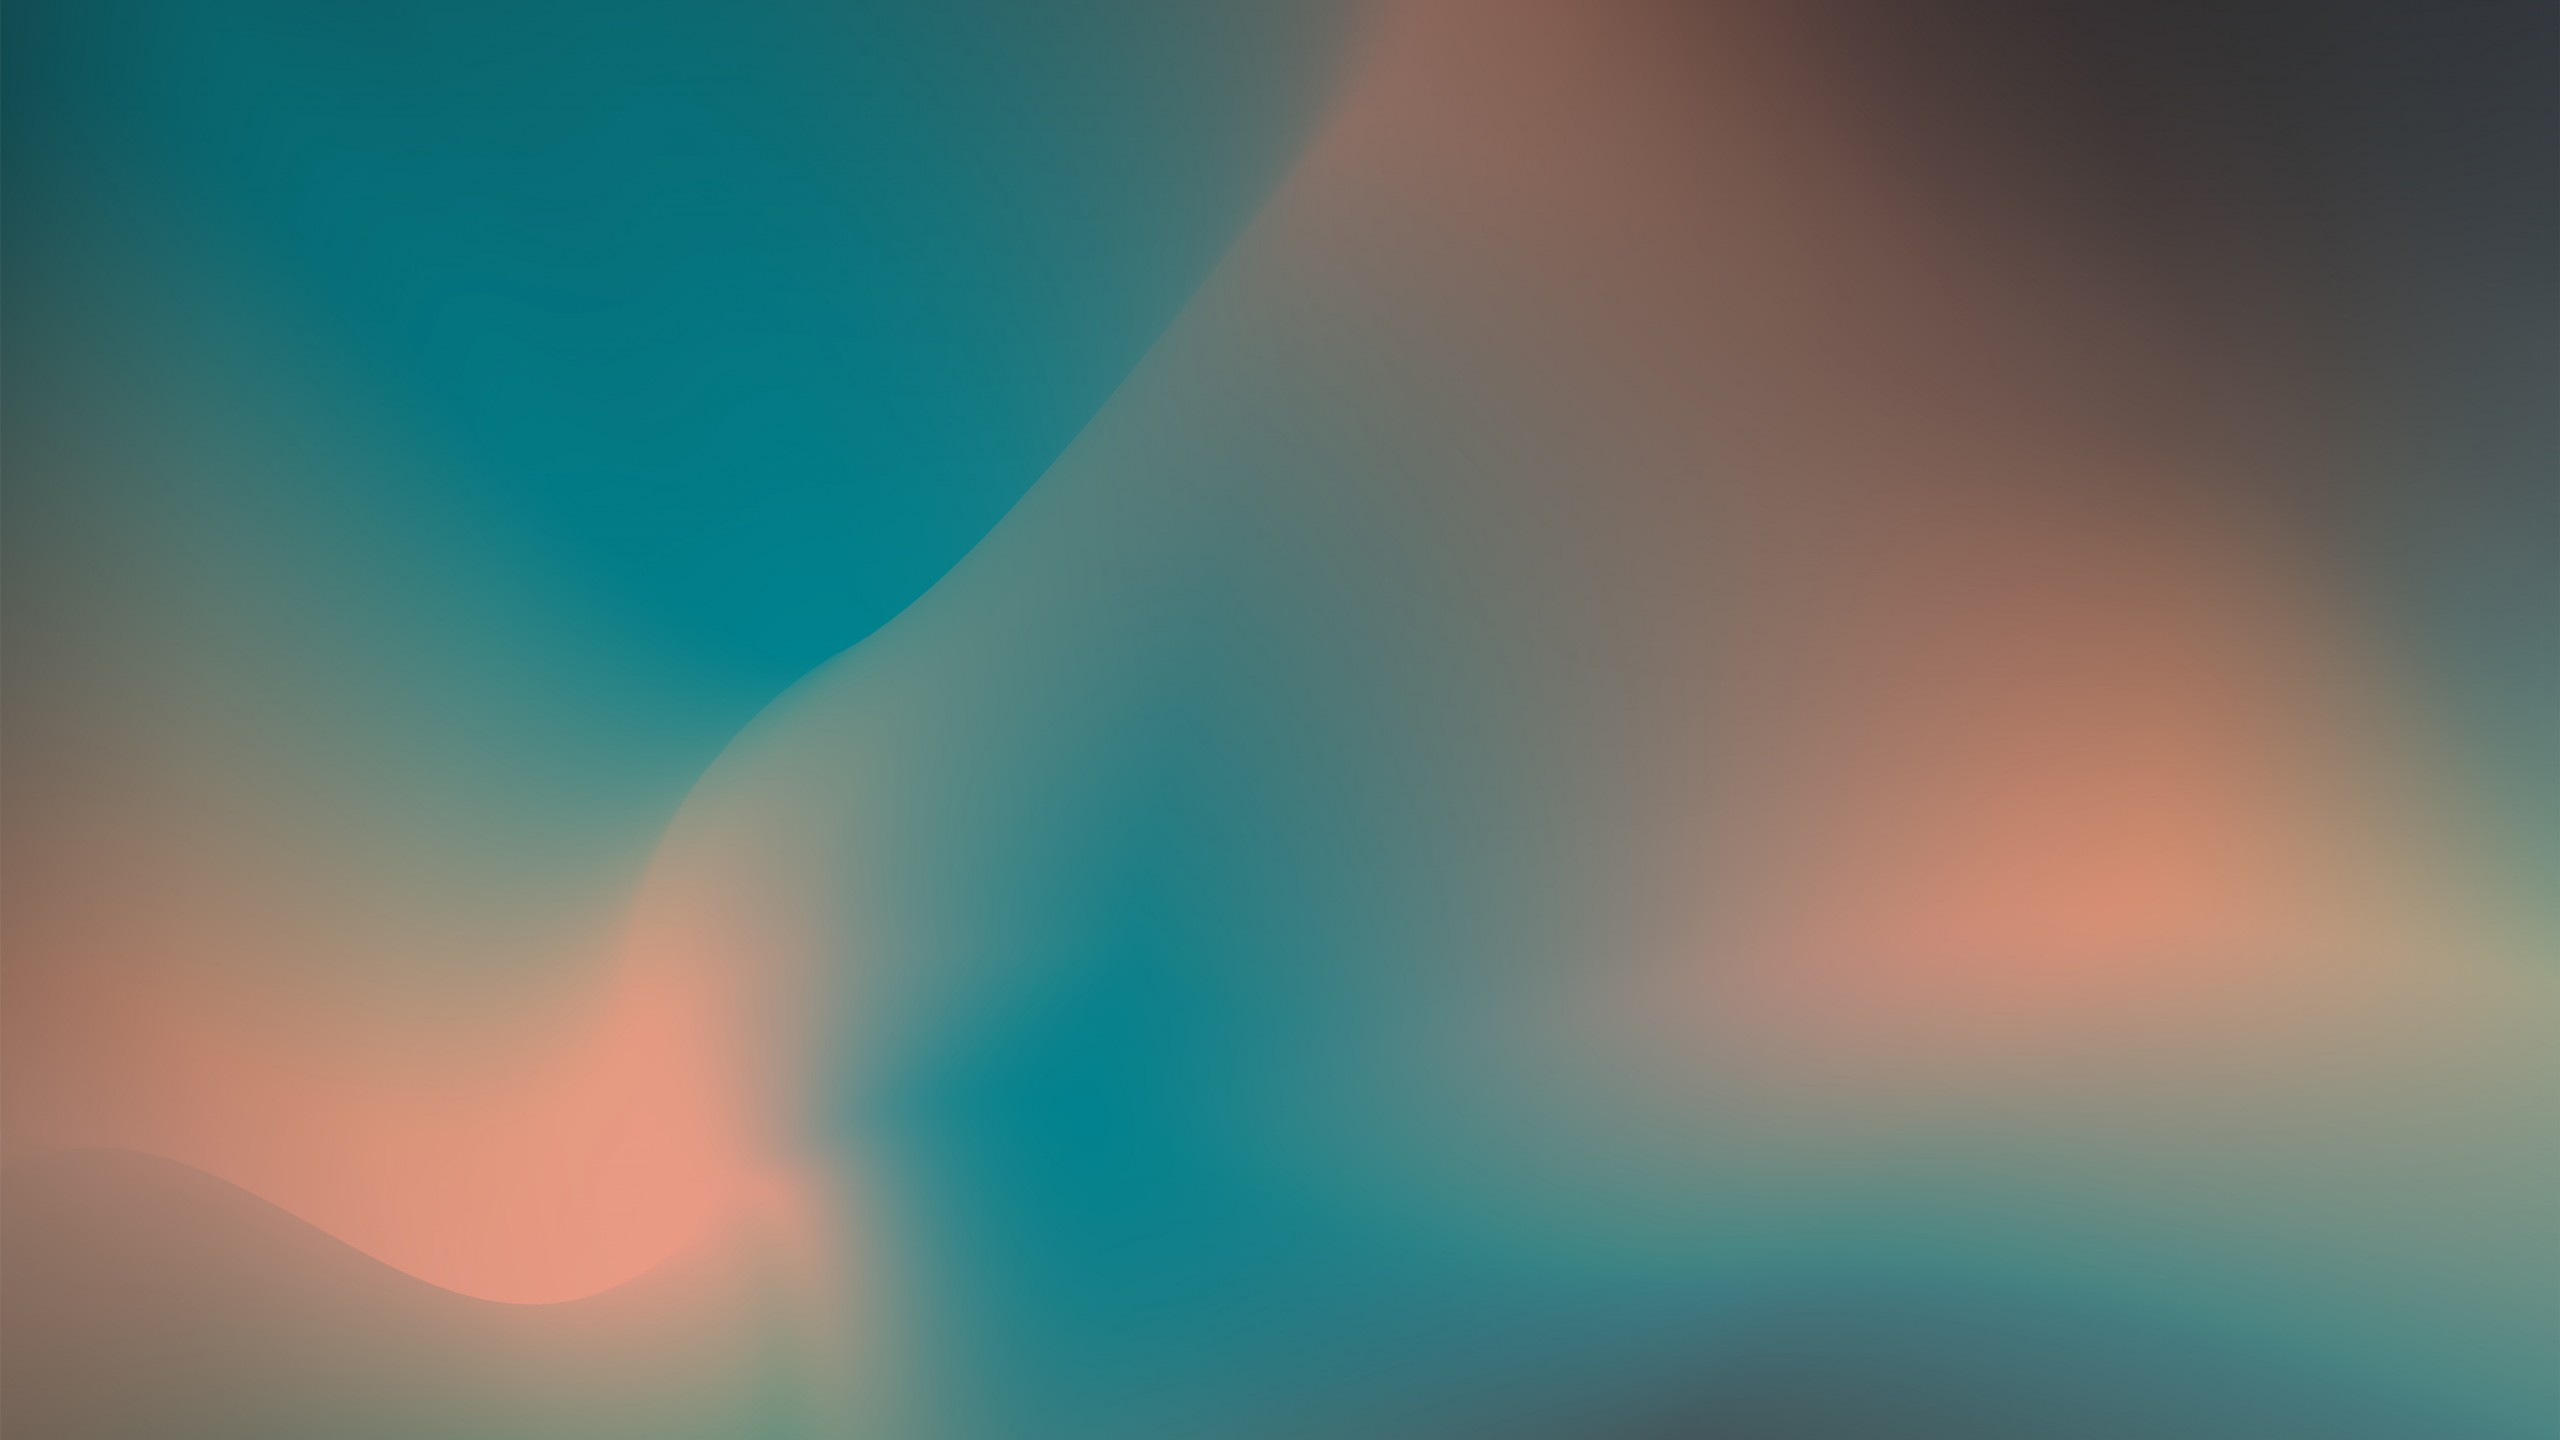 Wallpaper Google Pixel 3 Android 9 Pie Abstract 4k Os 20687